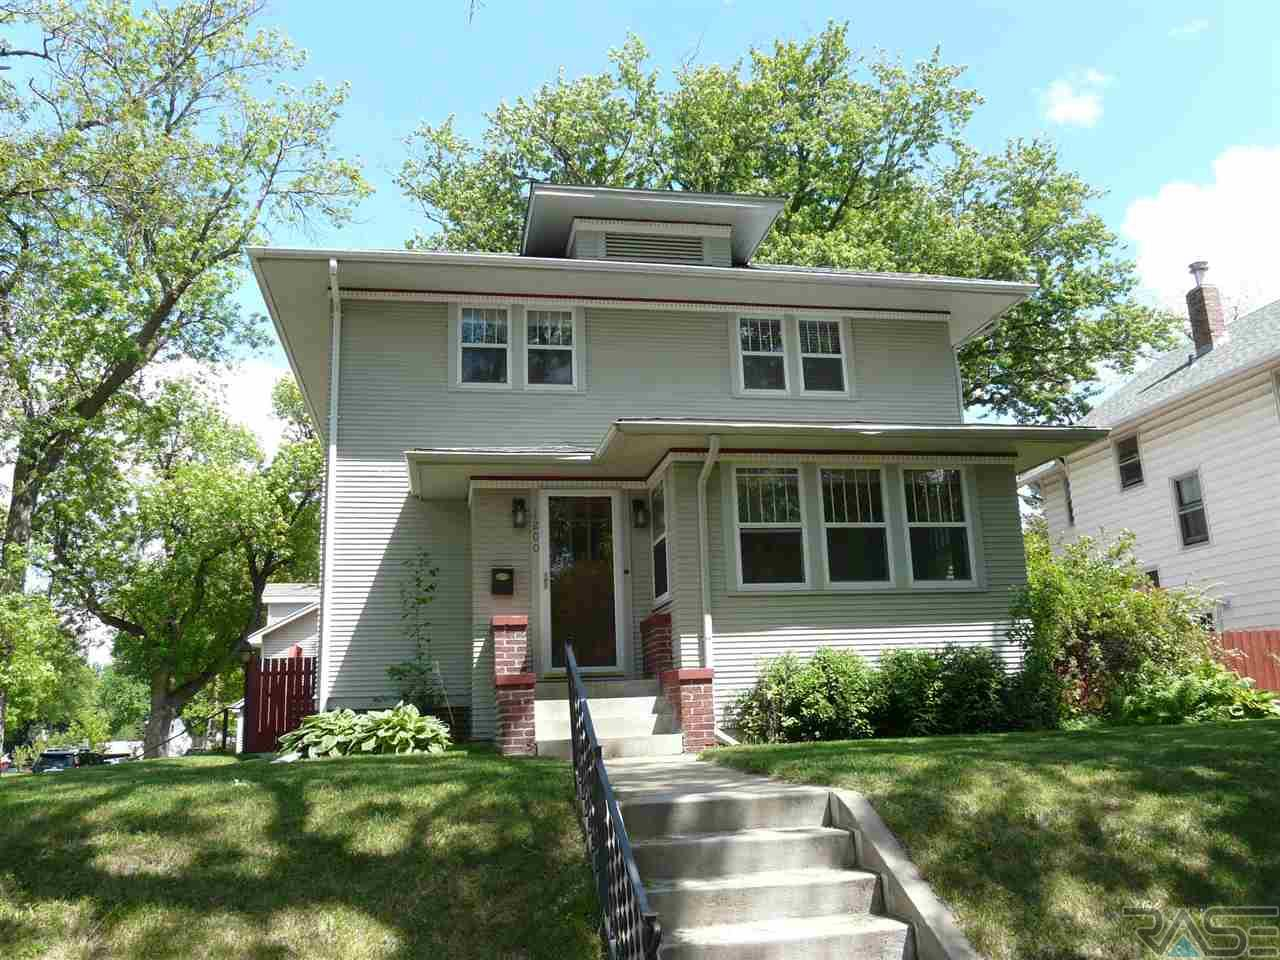 1200 S 4th Ave, Sioux Falls, SD 57105